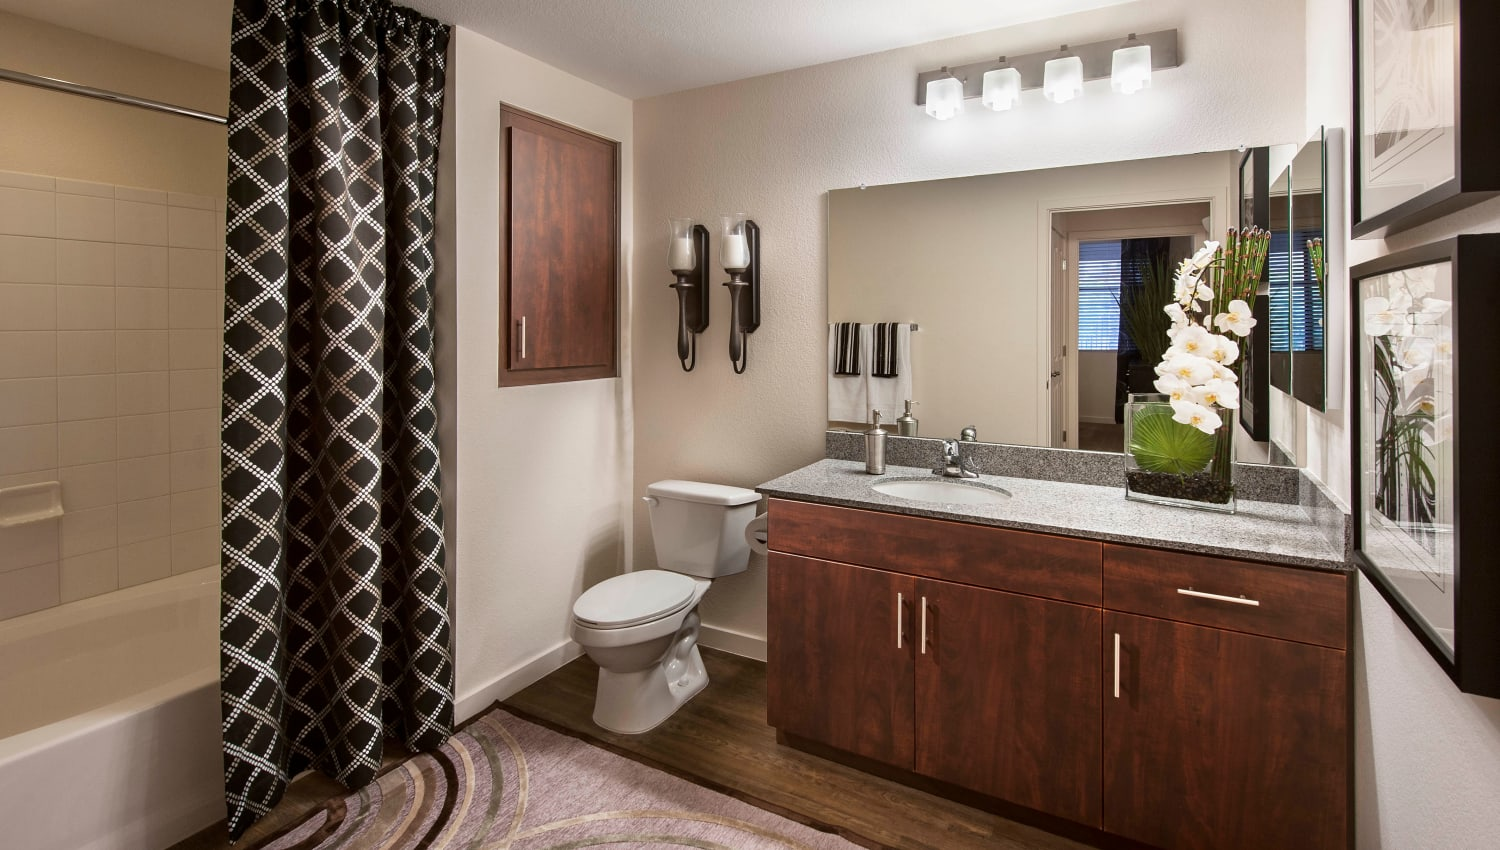 Master bathroom with a tiled shower and large vanity mirror in a model home at Redstone at SanTan Village in Gilbert, Arizona